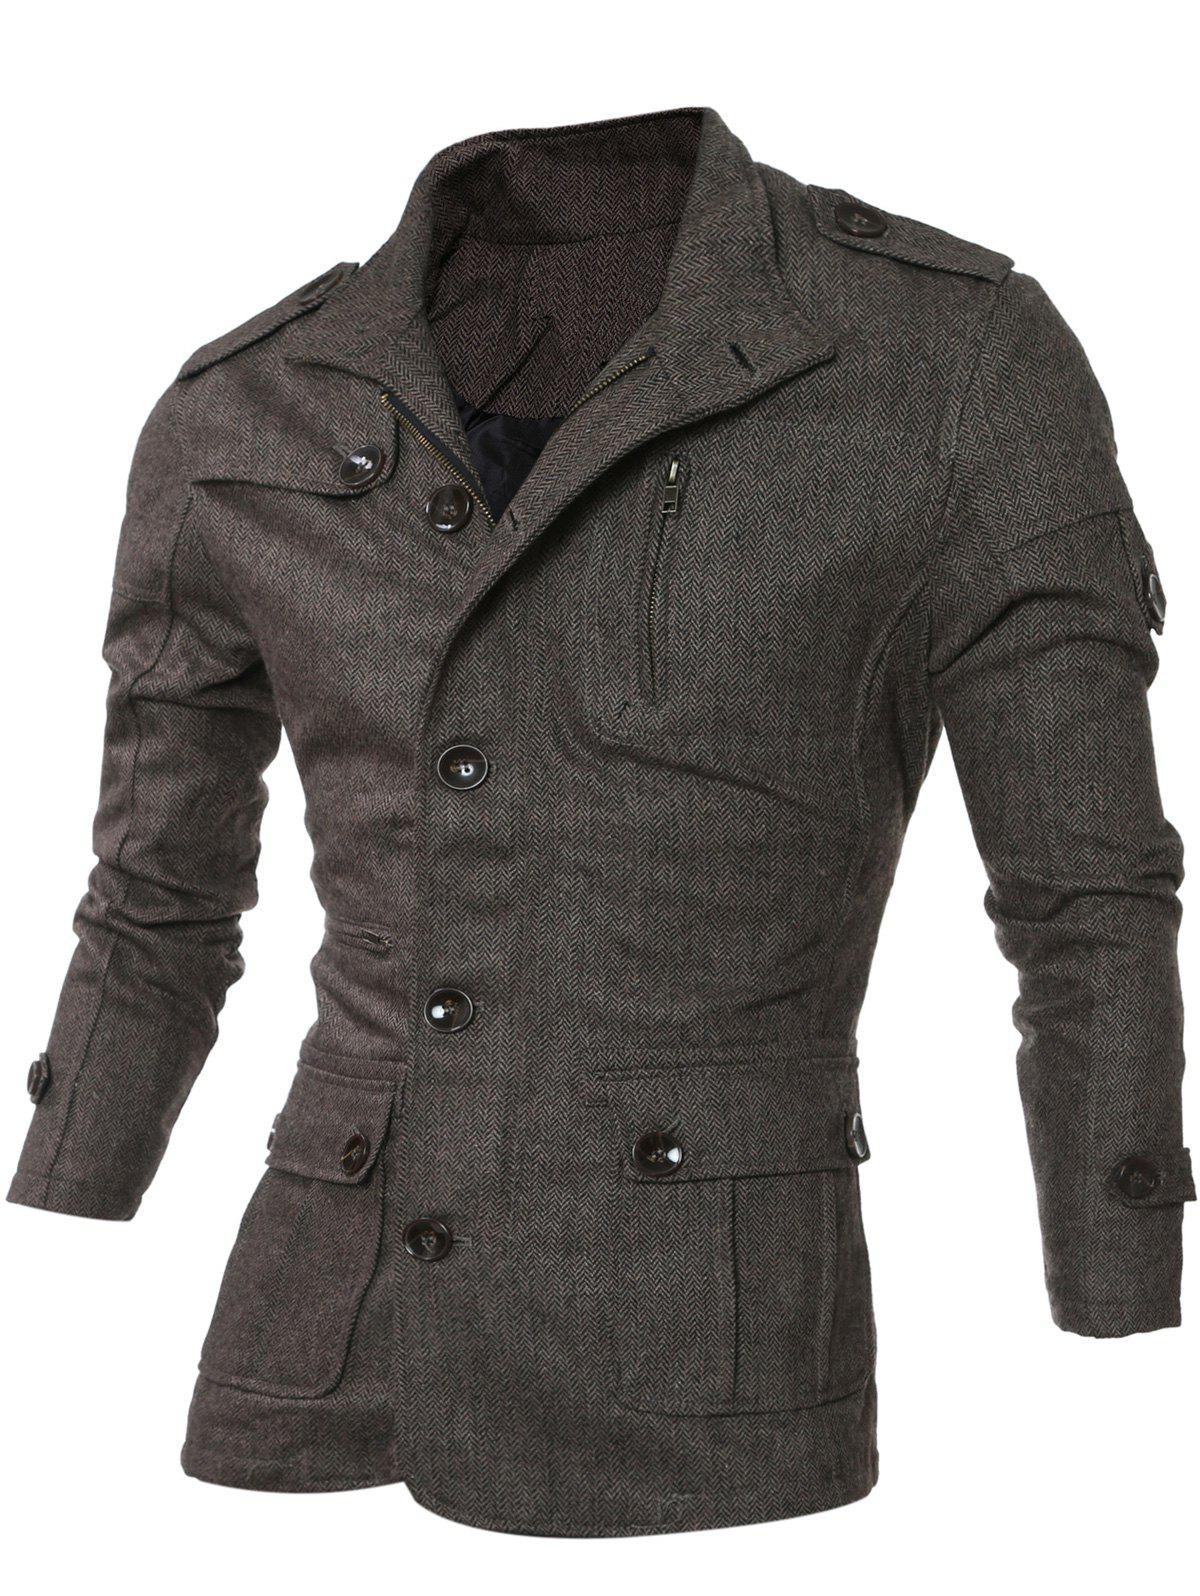 Col rabattu single-breasted Epaulet design poches Veste - café S